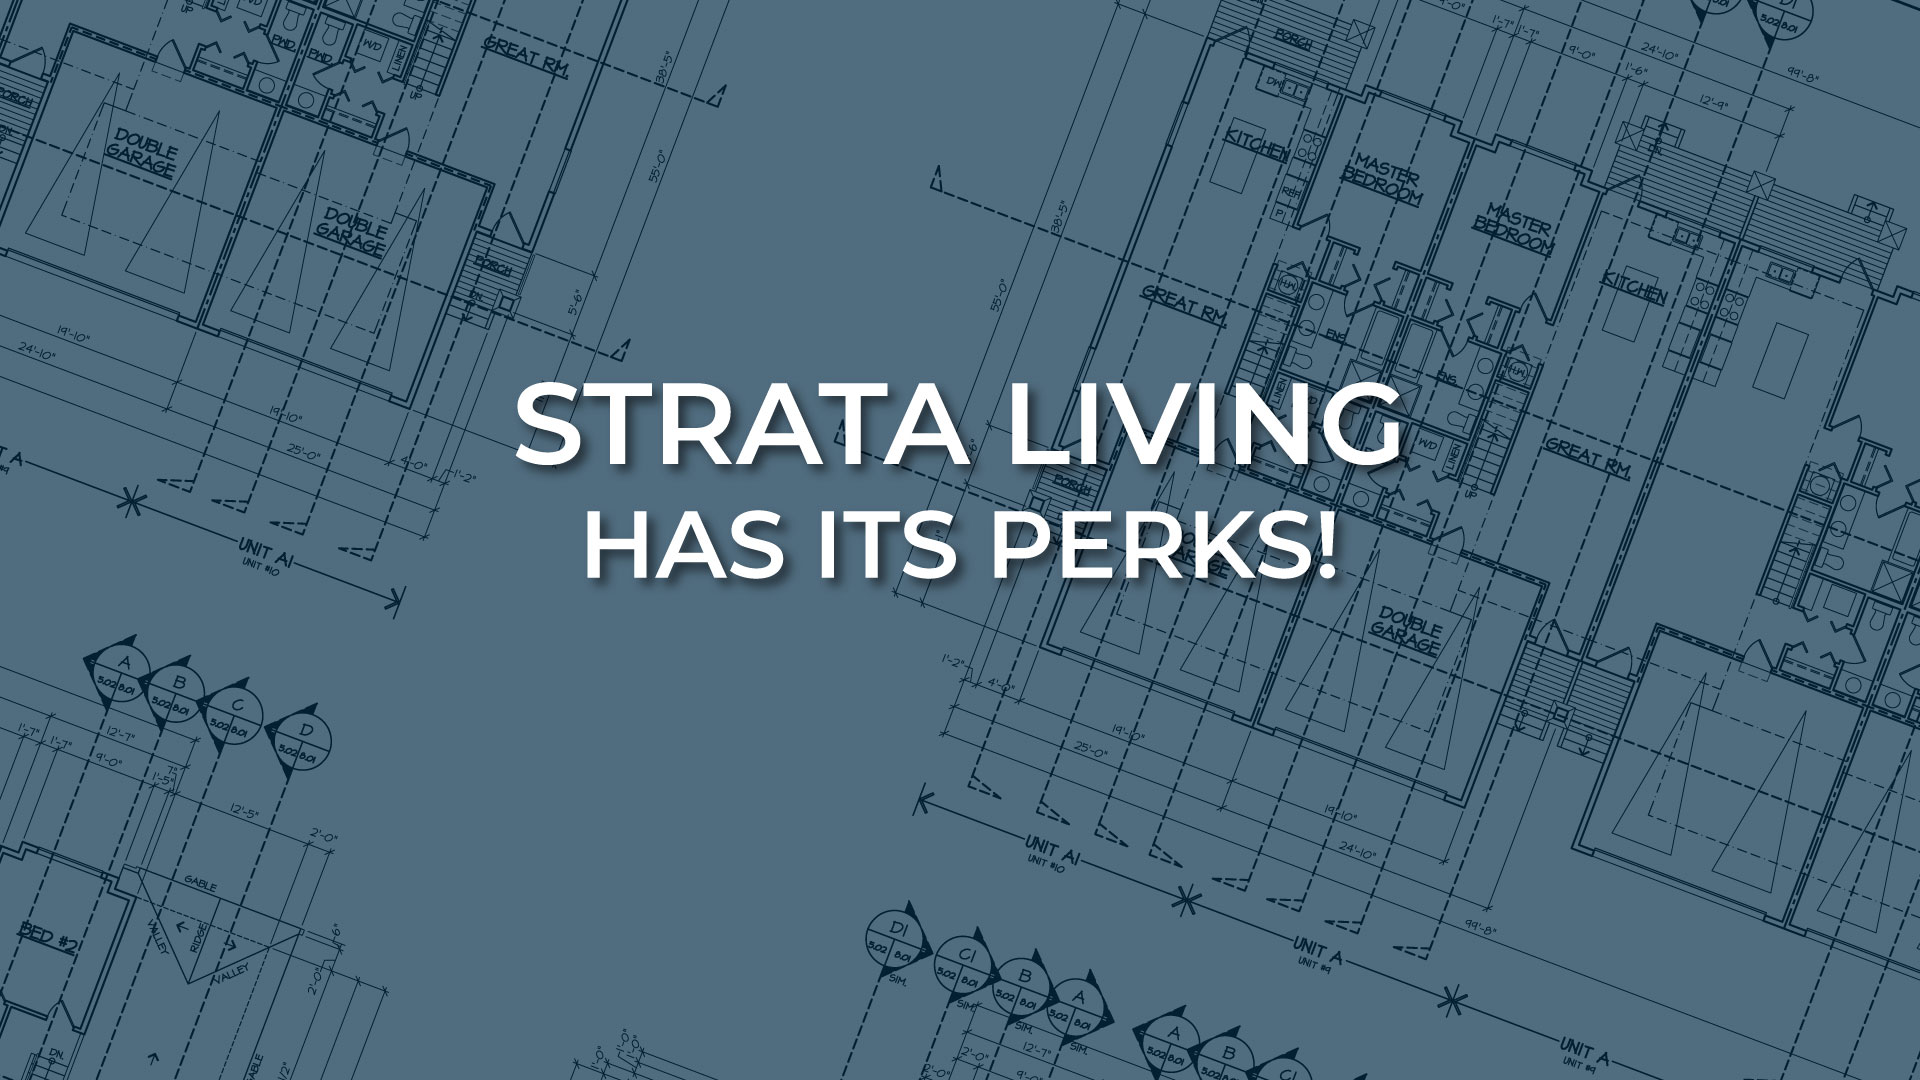 Strata_Living_has_its_perks